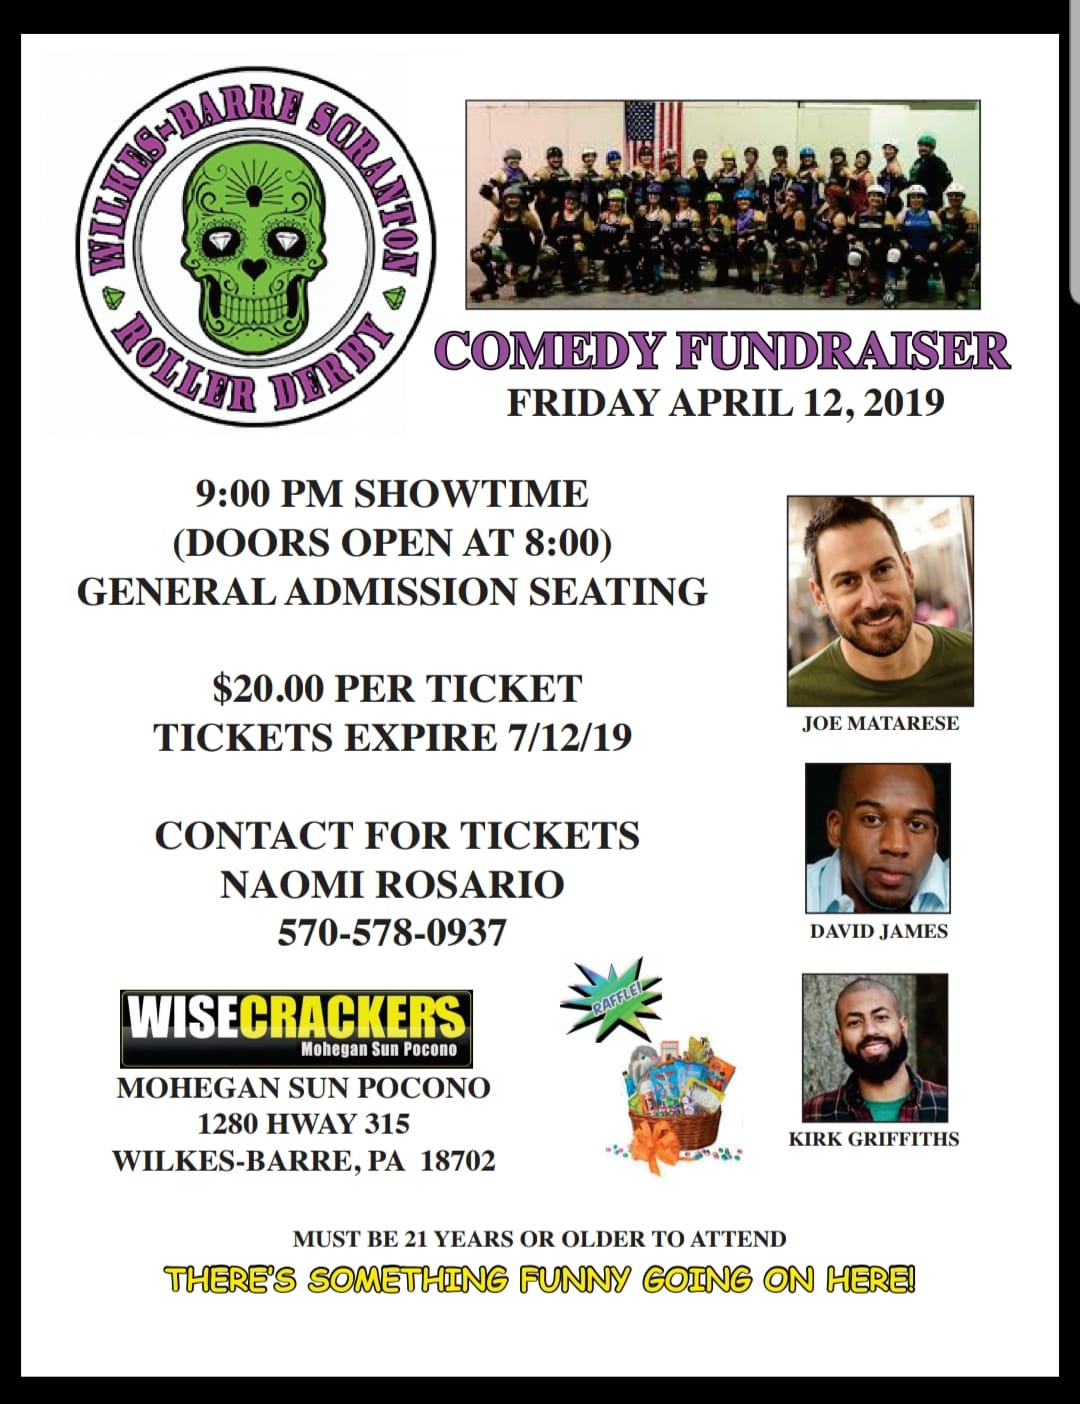 Comedy Fundraiser - Wise Crackers - Mohegan Sun Ponoco, 1280 Hwy 315, Wilkes- Barre, PAApril 12, 2019 at 9pmTickets are $20, please contact Naomi Rosario (570-578-0937)